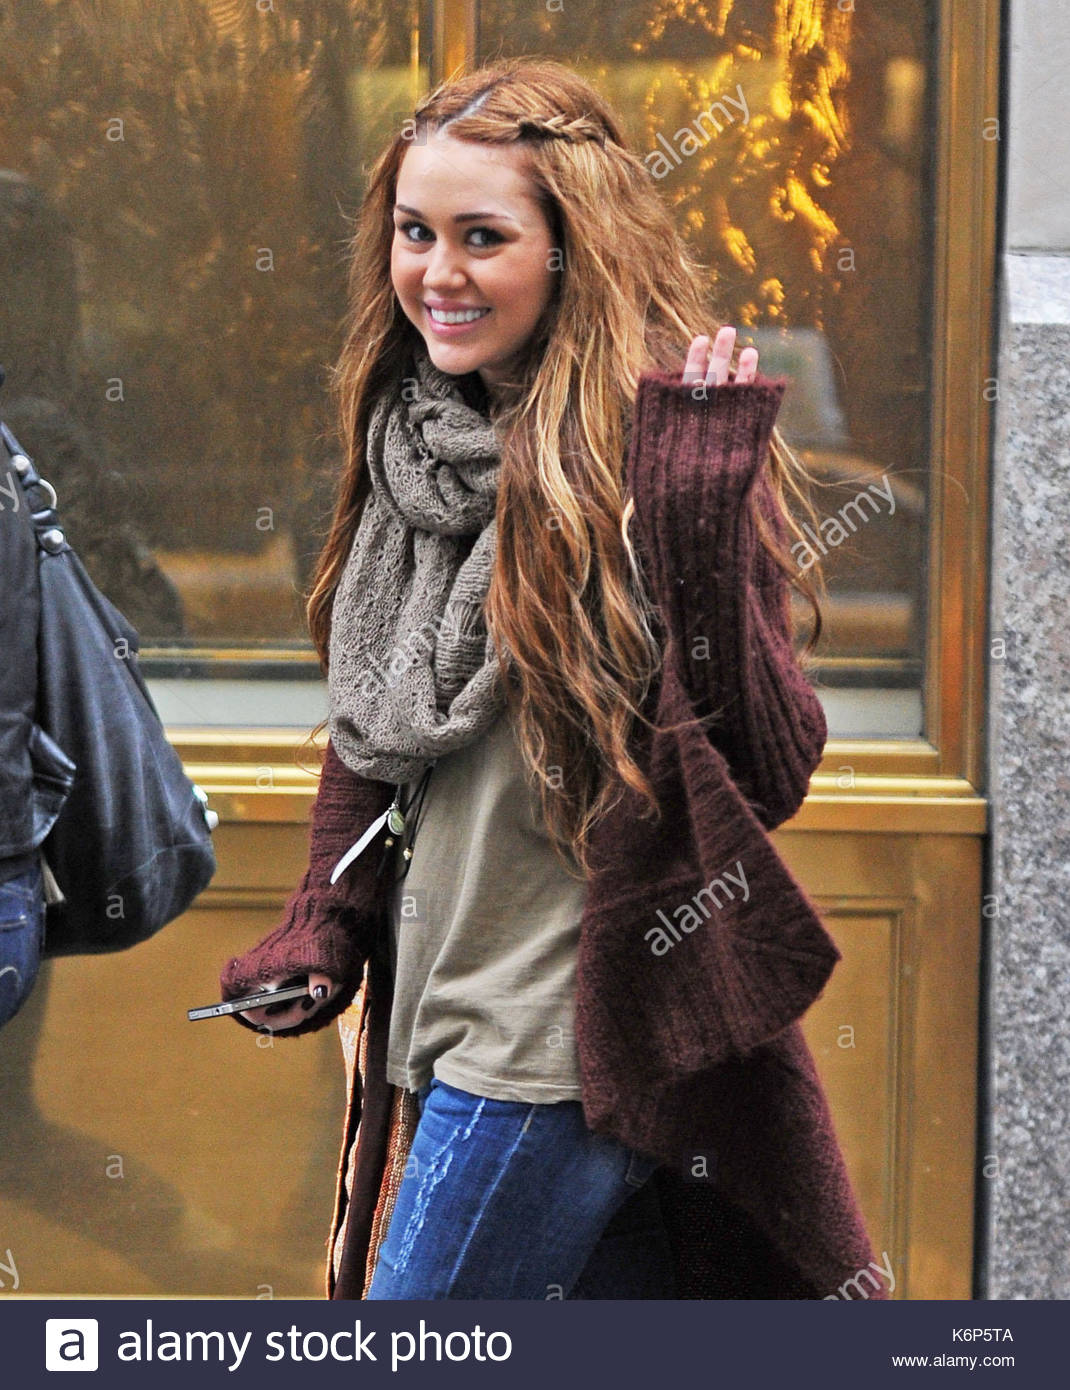 a1f7664e76a3 Miley Cyrus. Miley Cyrus shopping for shoes with a friend in New York City.